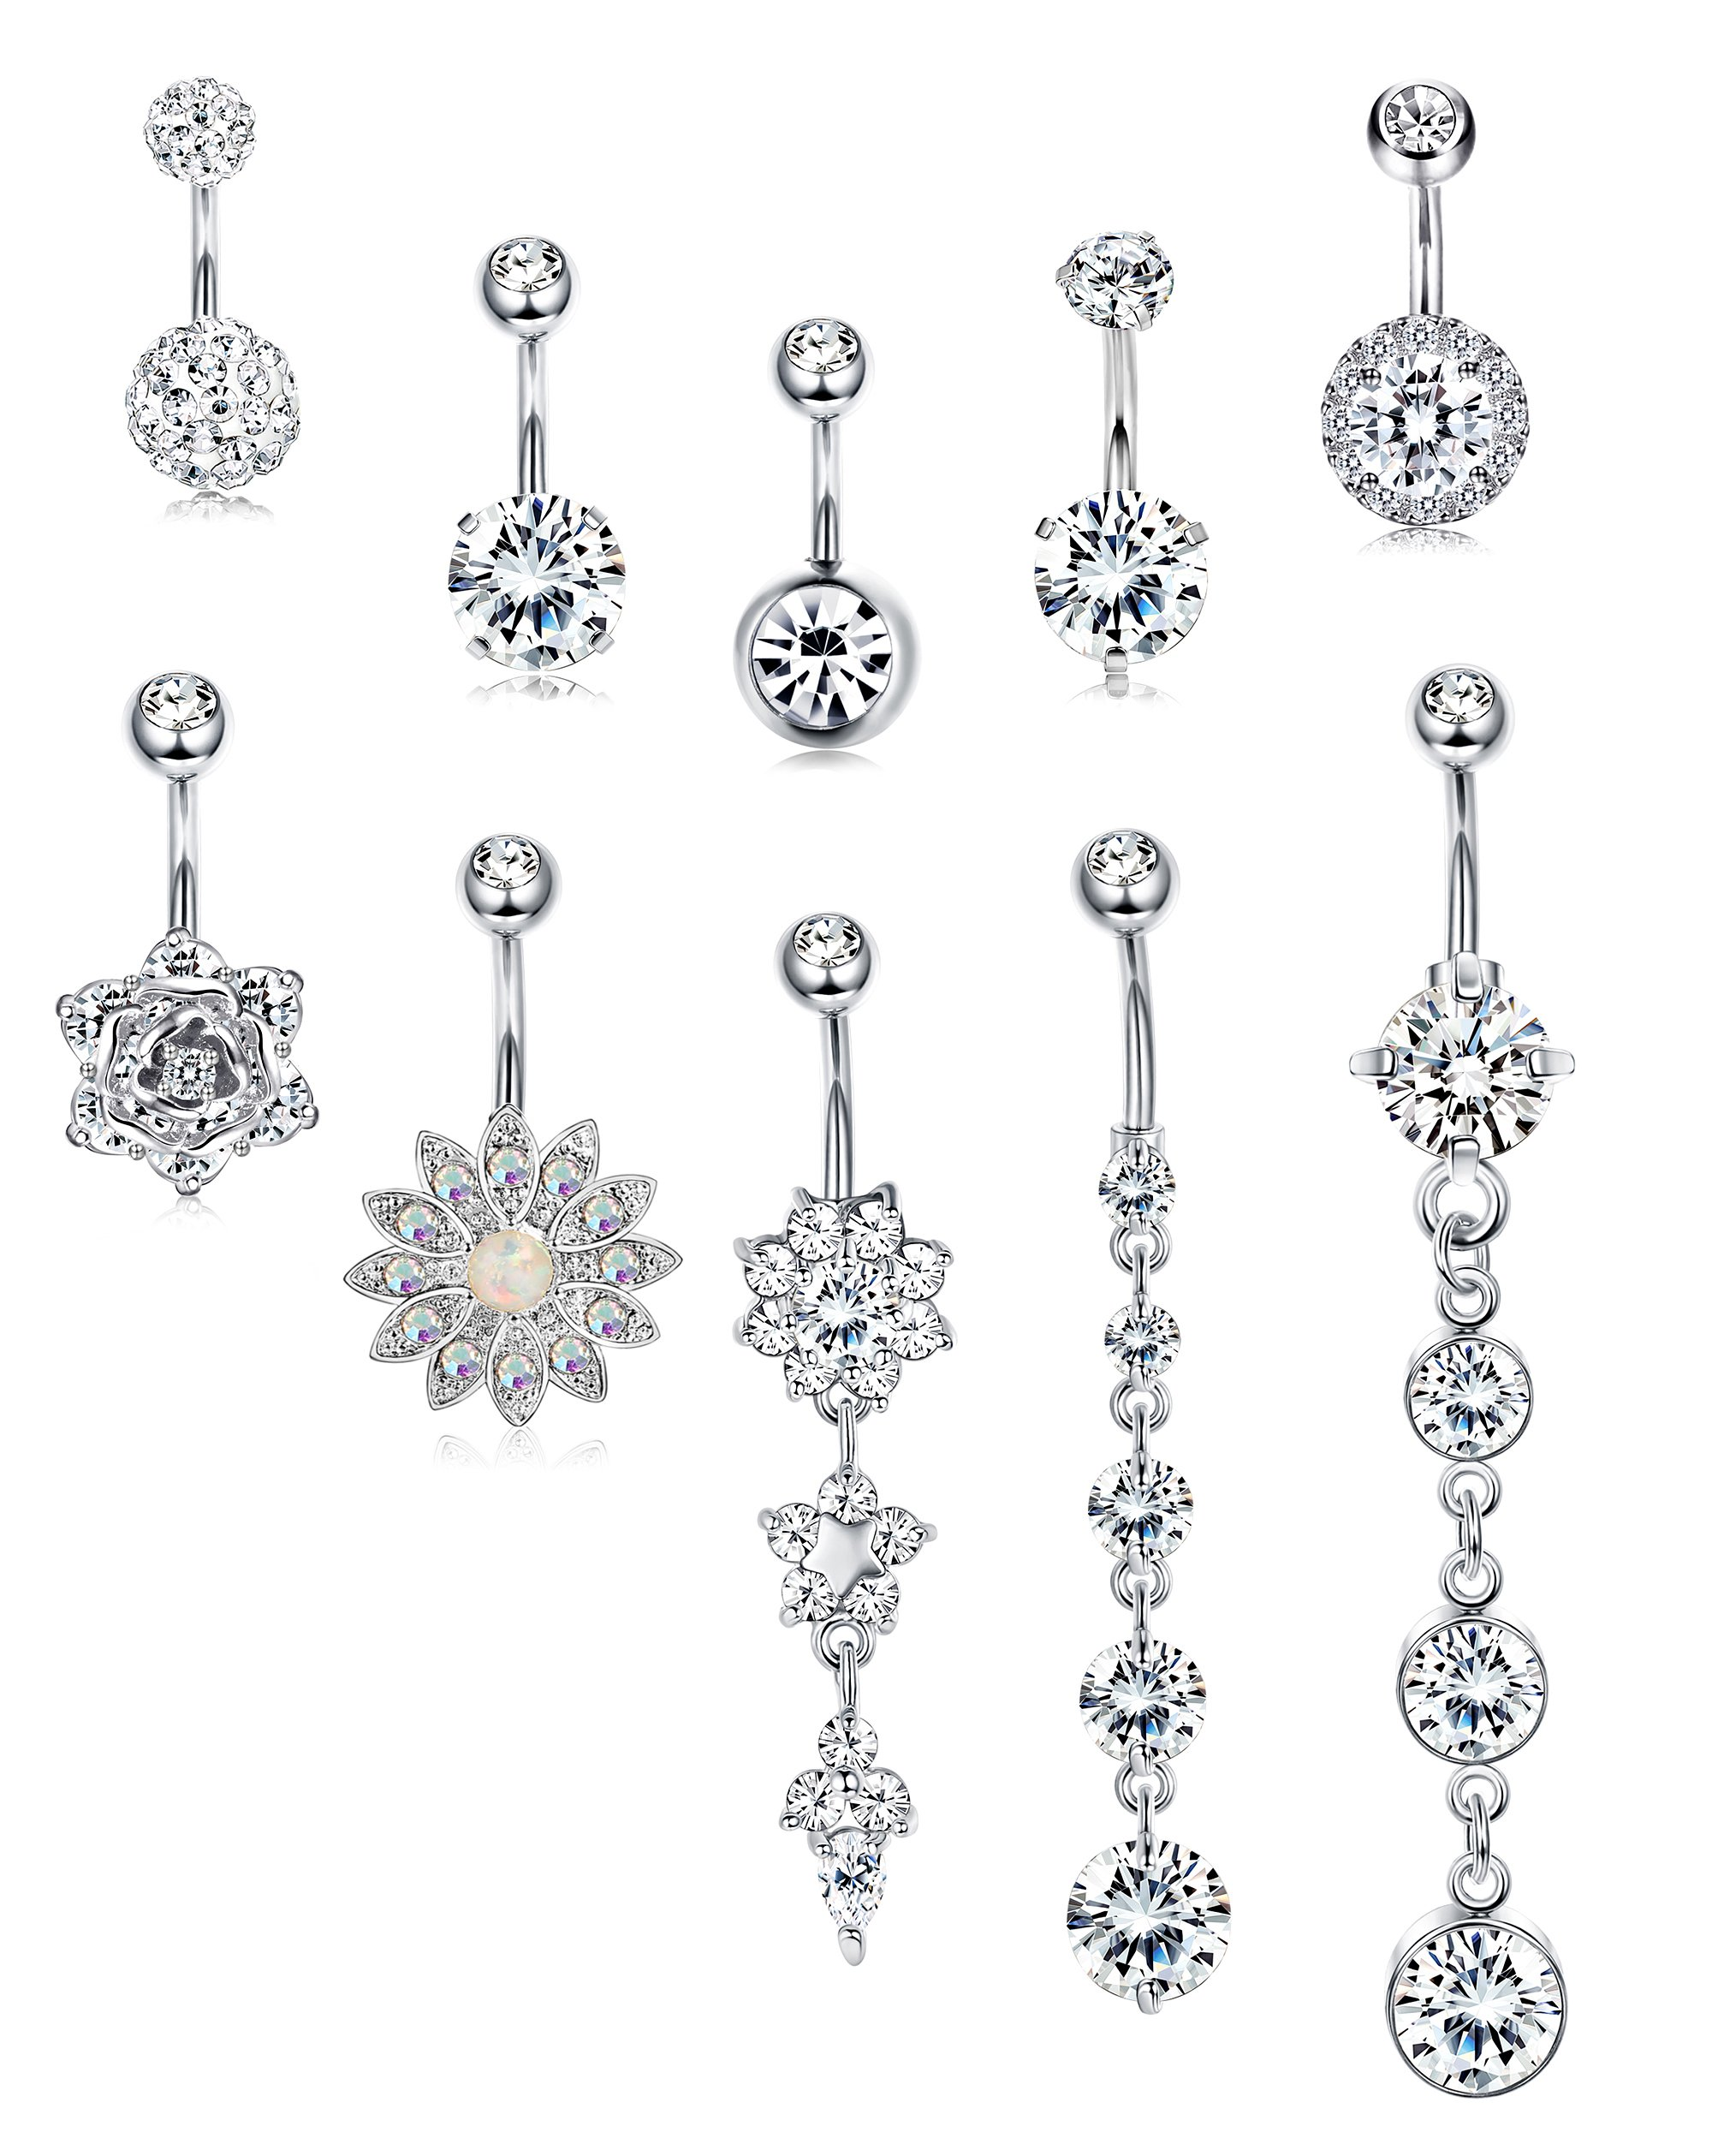 JOERICA 3-6PCS 14G Stainless Steel Belly Button Rings Navel Body Jewelry Belly Piercing CZ Inlaid (G:10Pcs,Silver-Tone) by JOERICA